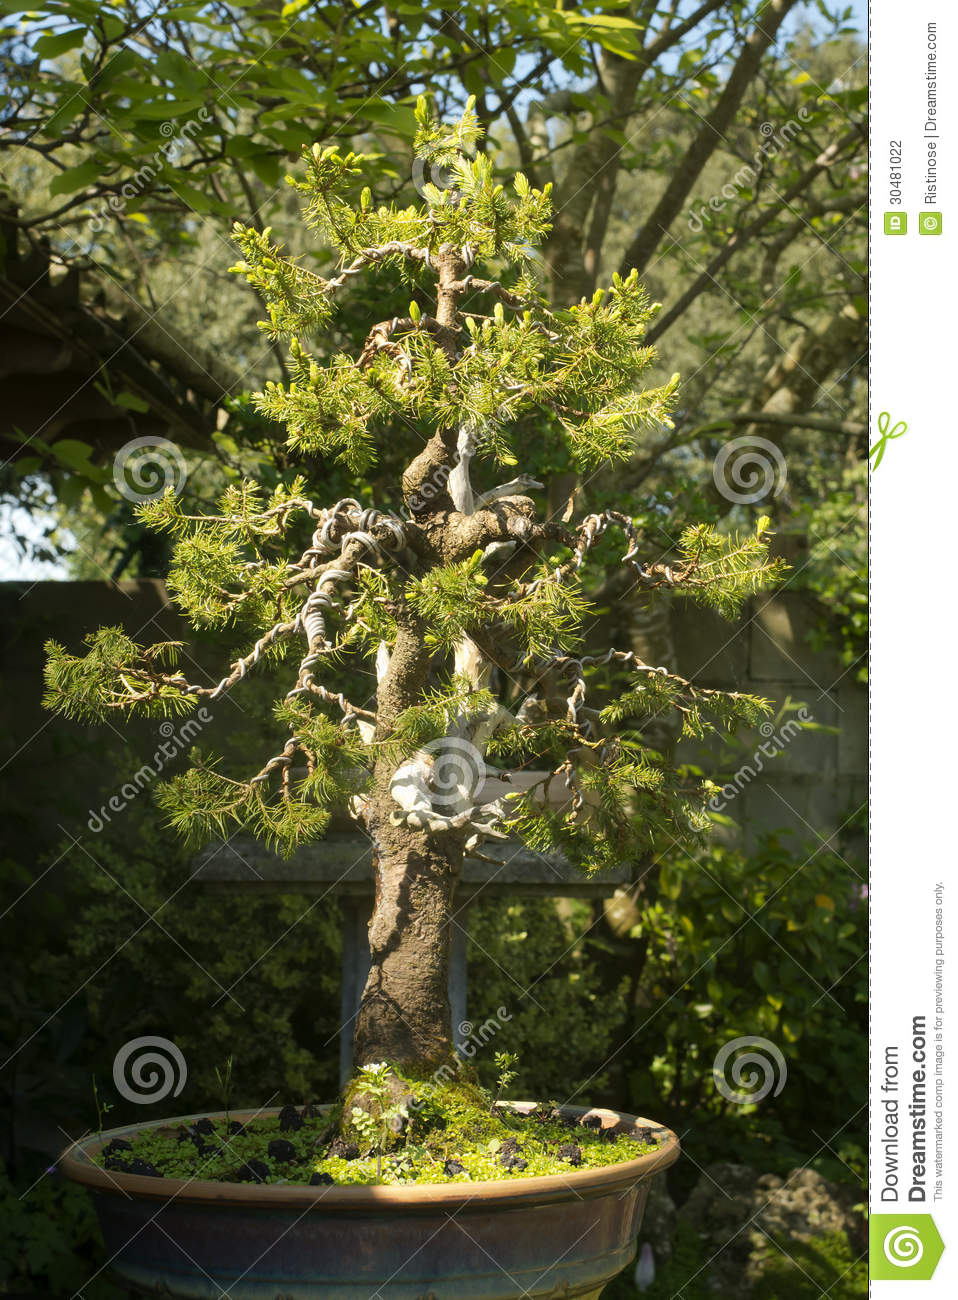 conifer-bonsai-tree-nches-wiring-process-garden-30481022 Wiring Bonsai on bonsai lamps, bonsai jade, bonsai tools, bonsai starter, bonsai cultivation and care, bonsai tree, bonsai blue, bonsai artist, bonsai copper wire, bonsai accessories, bonsai wire sets, bonsai wire sizes, indoor bonsai, national bonsai foundation, bonsai ficus varieties, bonsai shapes, bonsai without wires,